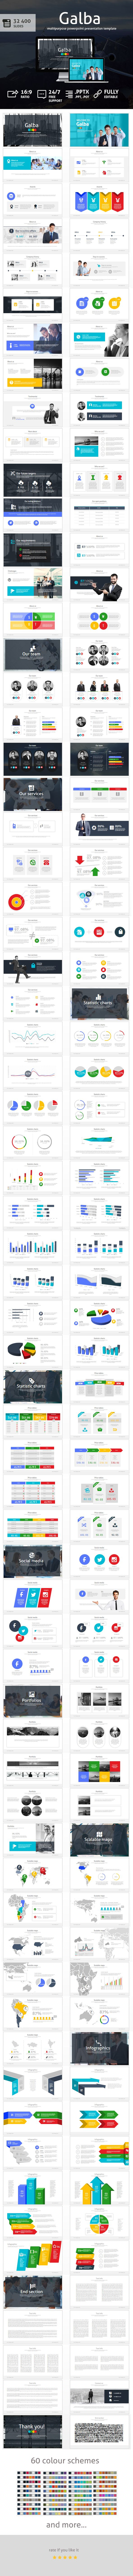 Galba Powerpoint Presentation Template #pptx • Click here to download ! http://graphicriver.net/item/galba-powerpoint-presentation-template/15733836?ref=pxcr